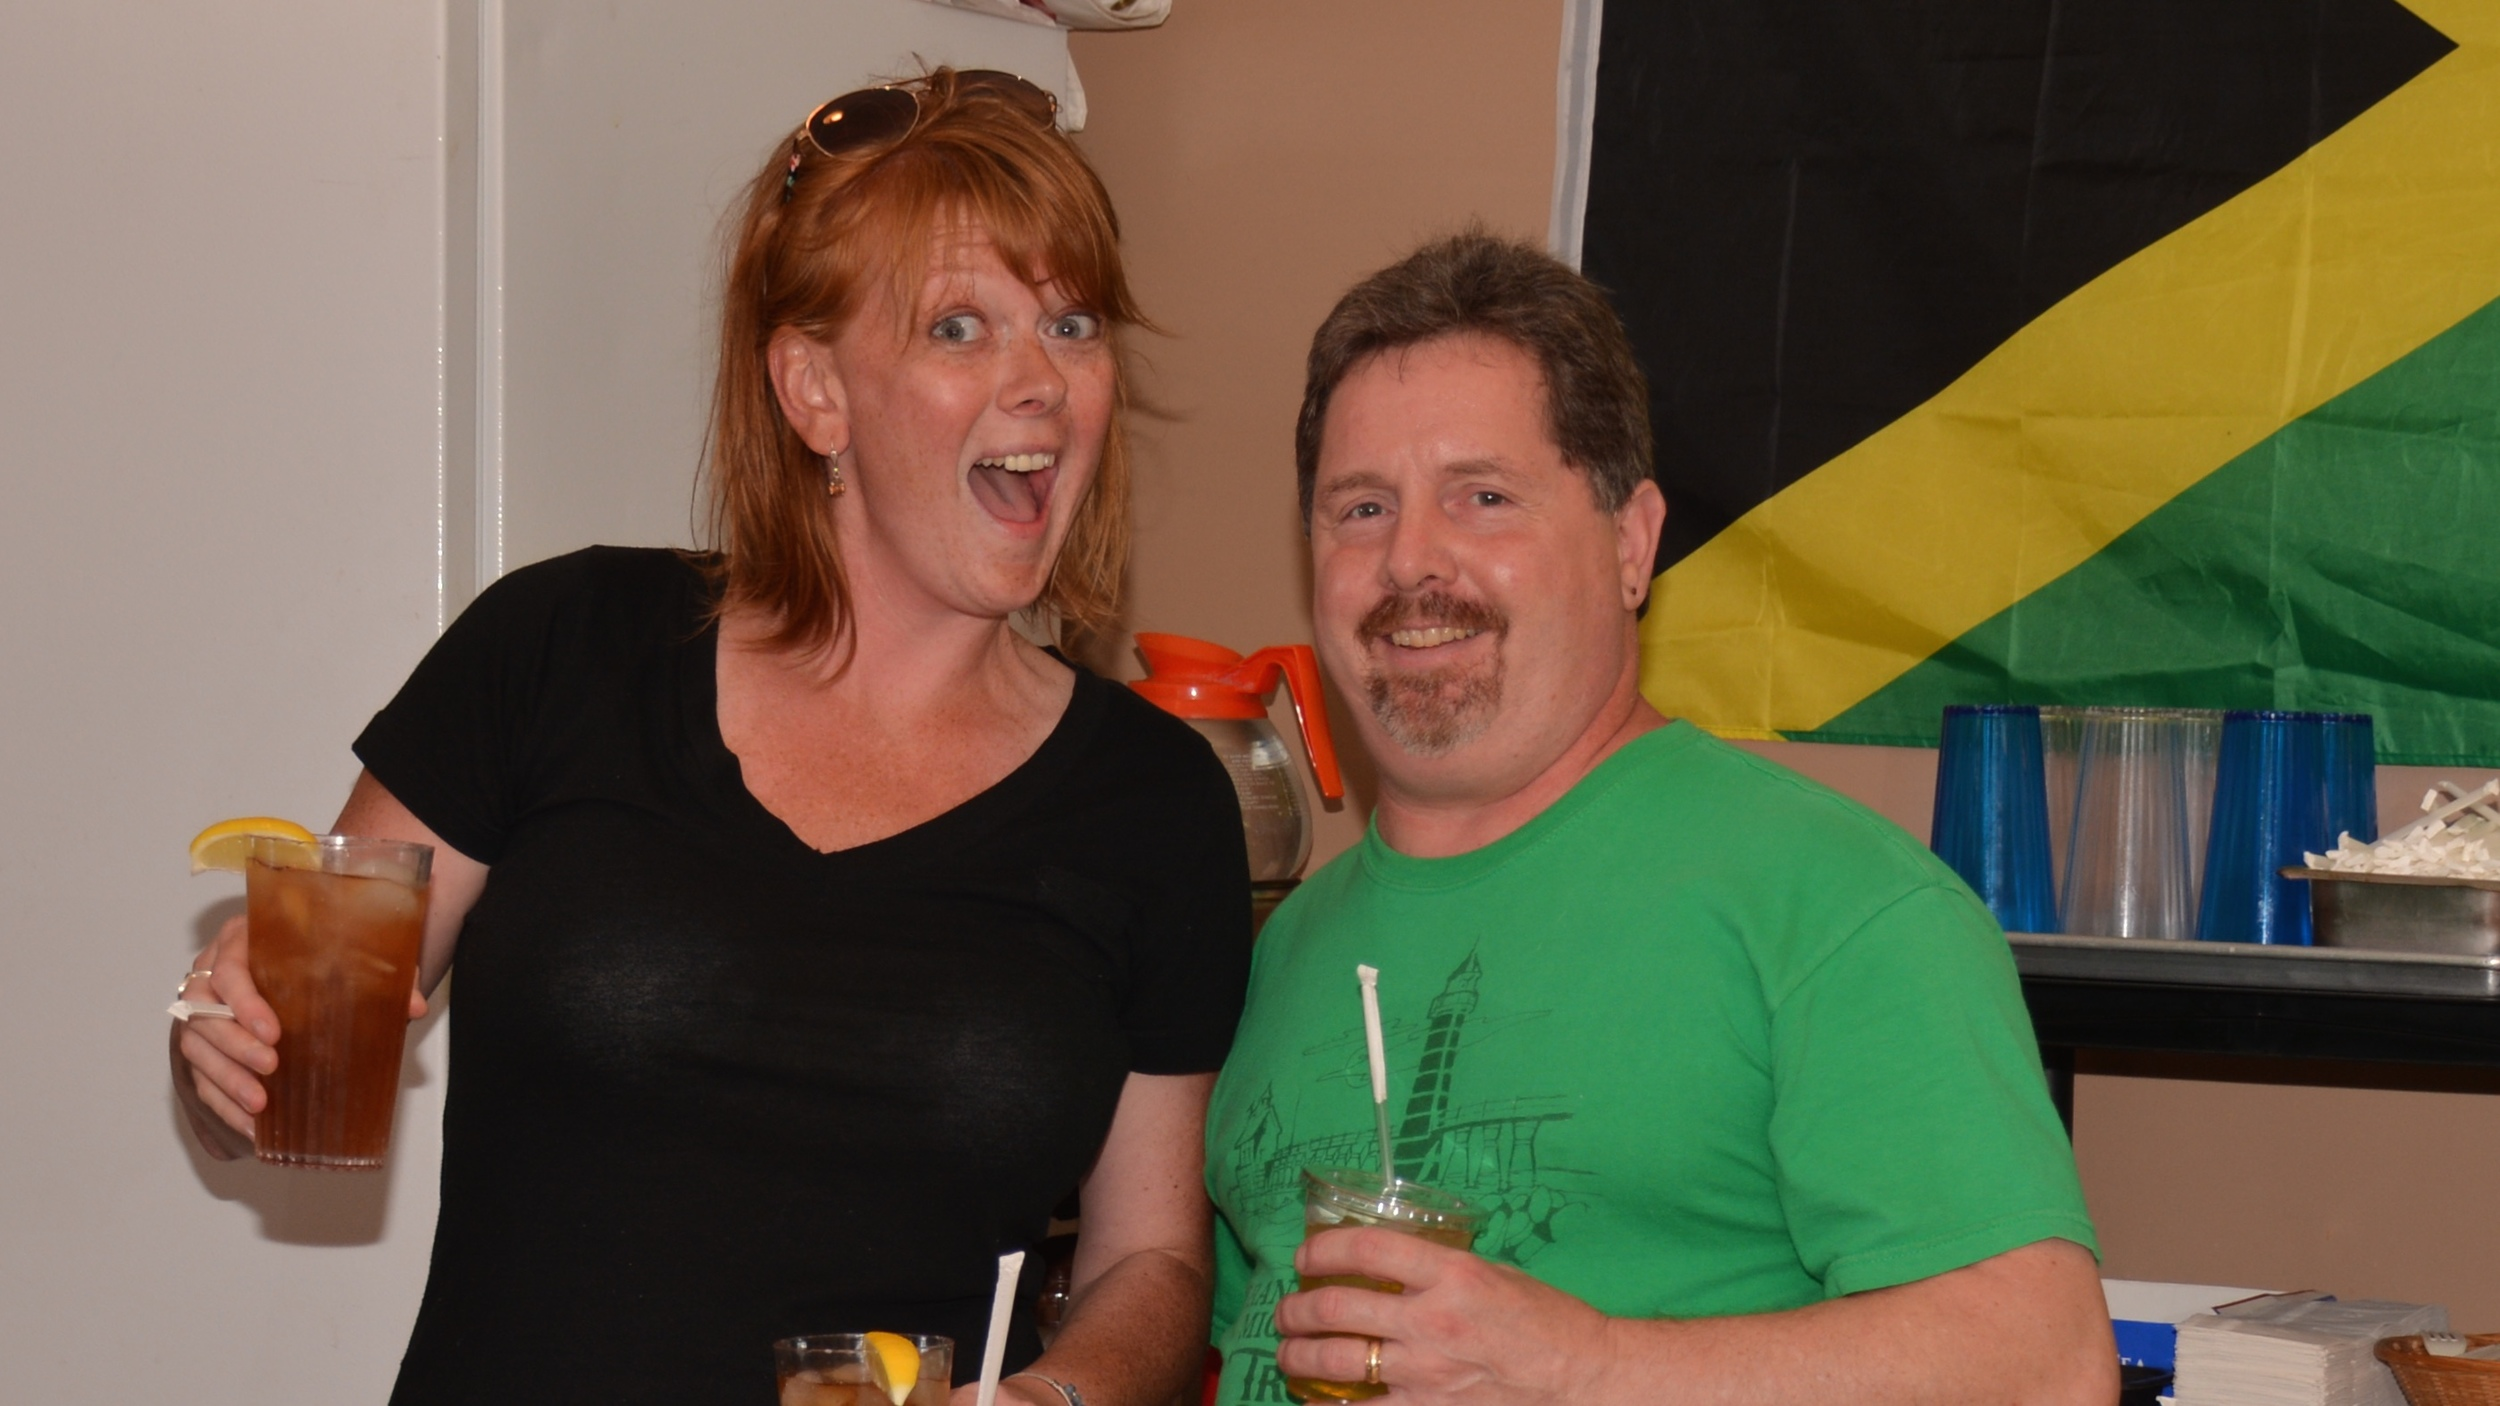 Great smiles and fun times with Amber and Mark - Thank you for entertaining us!